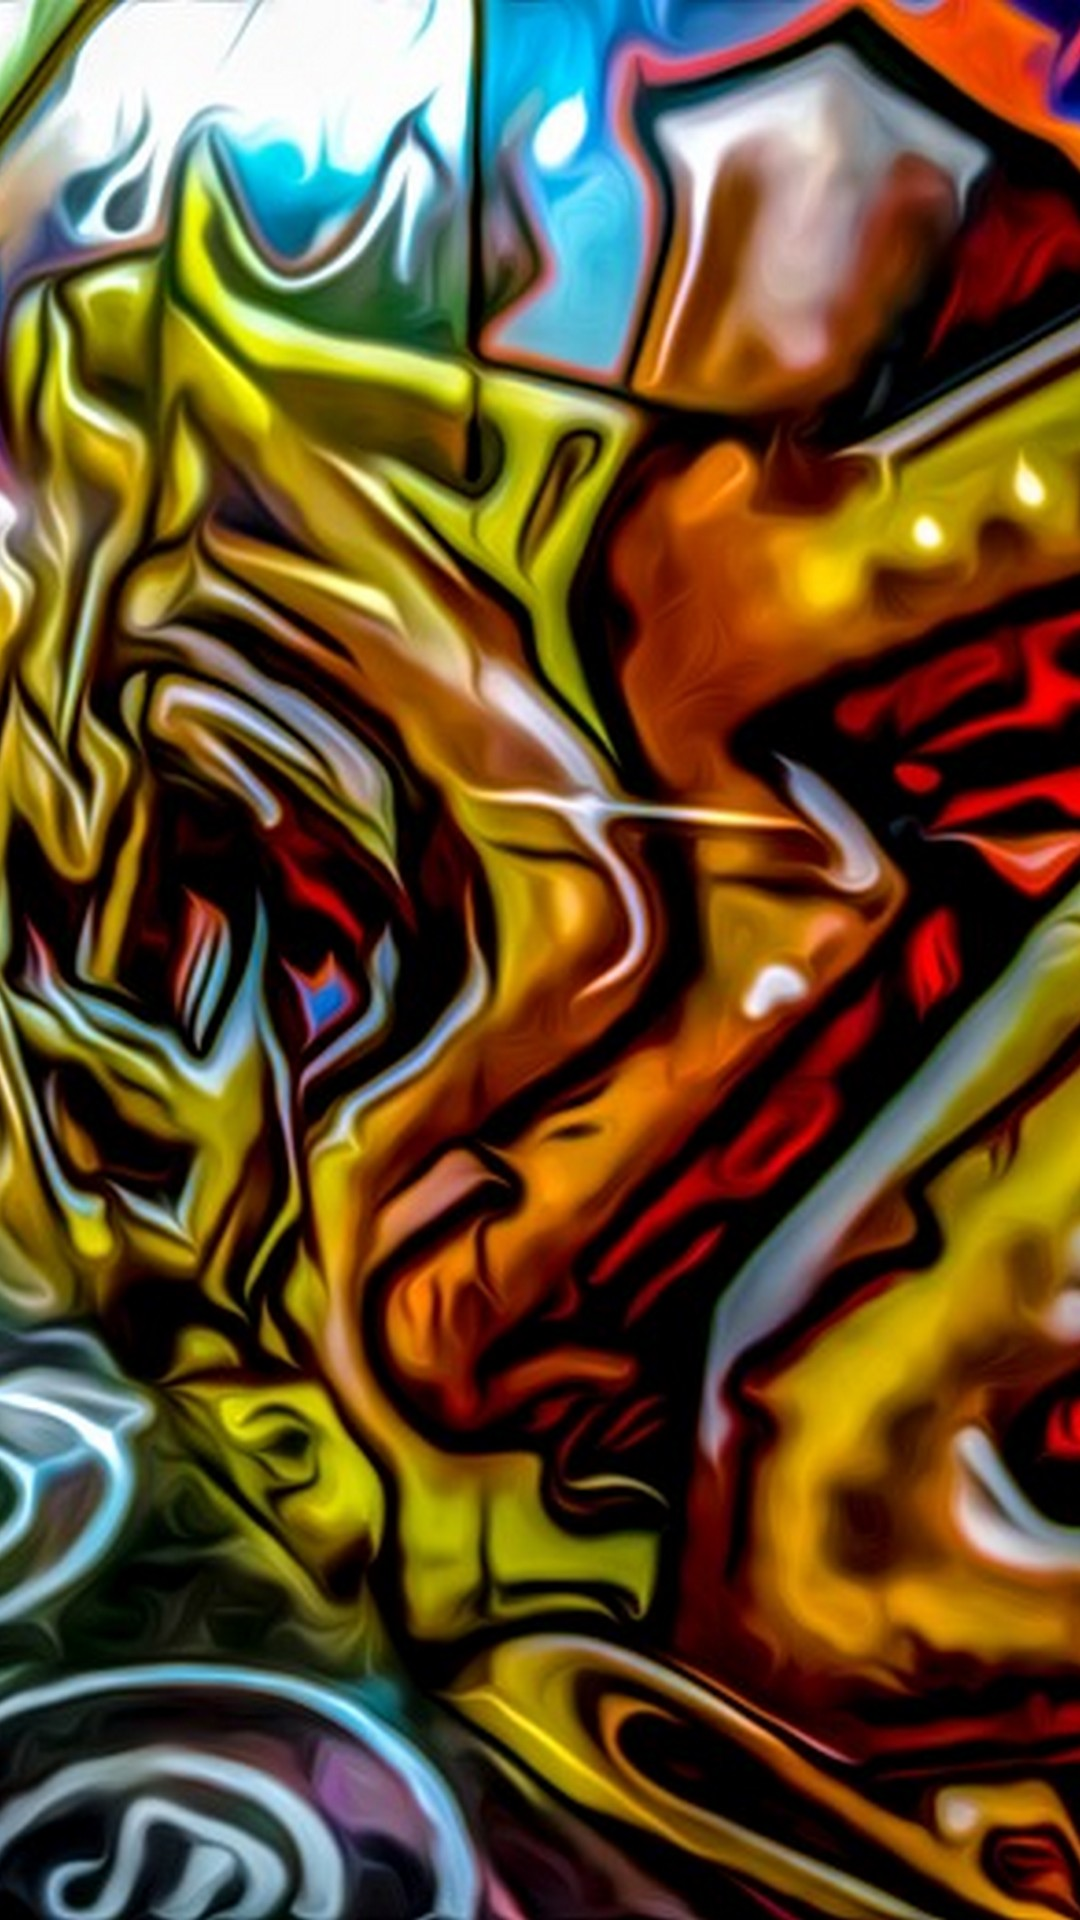 Graffiti Font Wallpaper Android